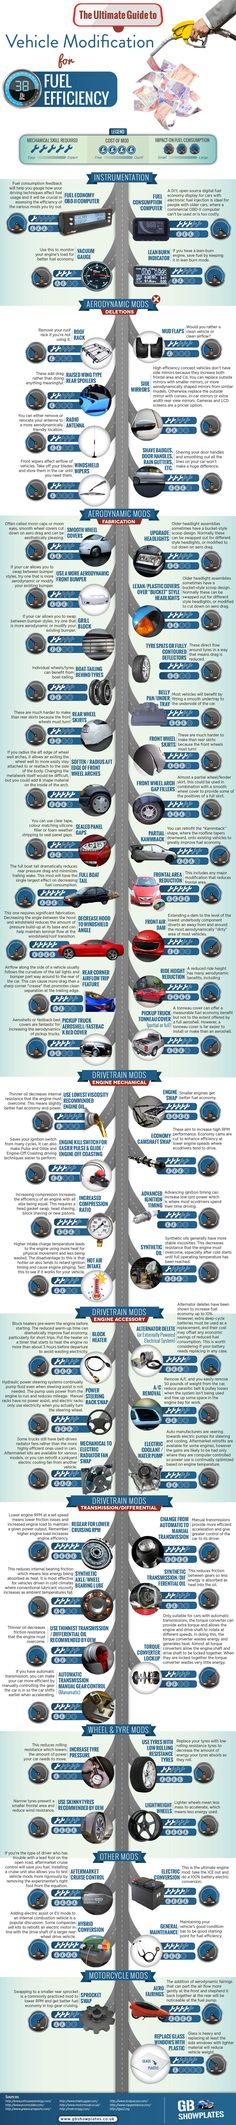 The Ultimate Guide to Vehicle Modifcation For Fuel Efficiency